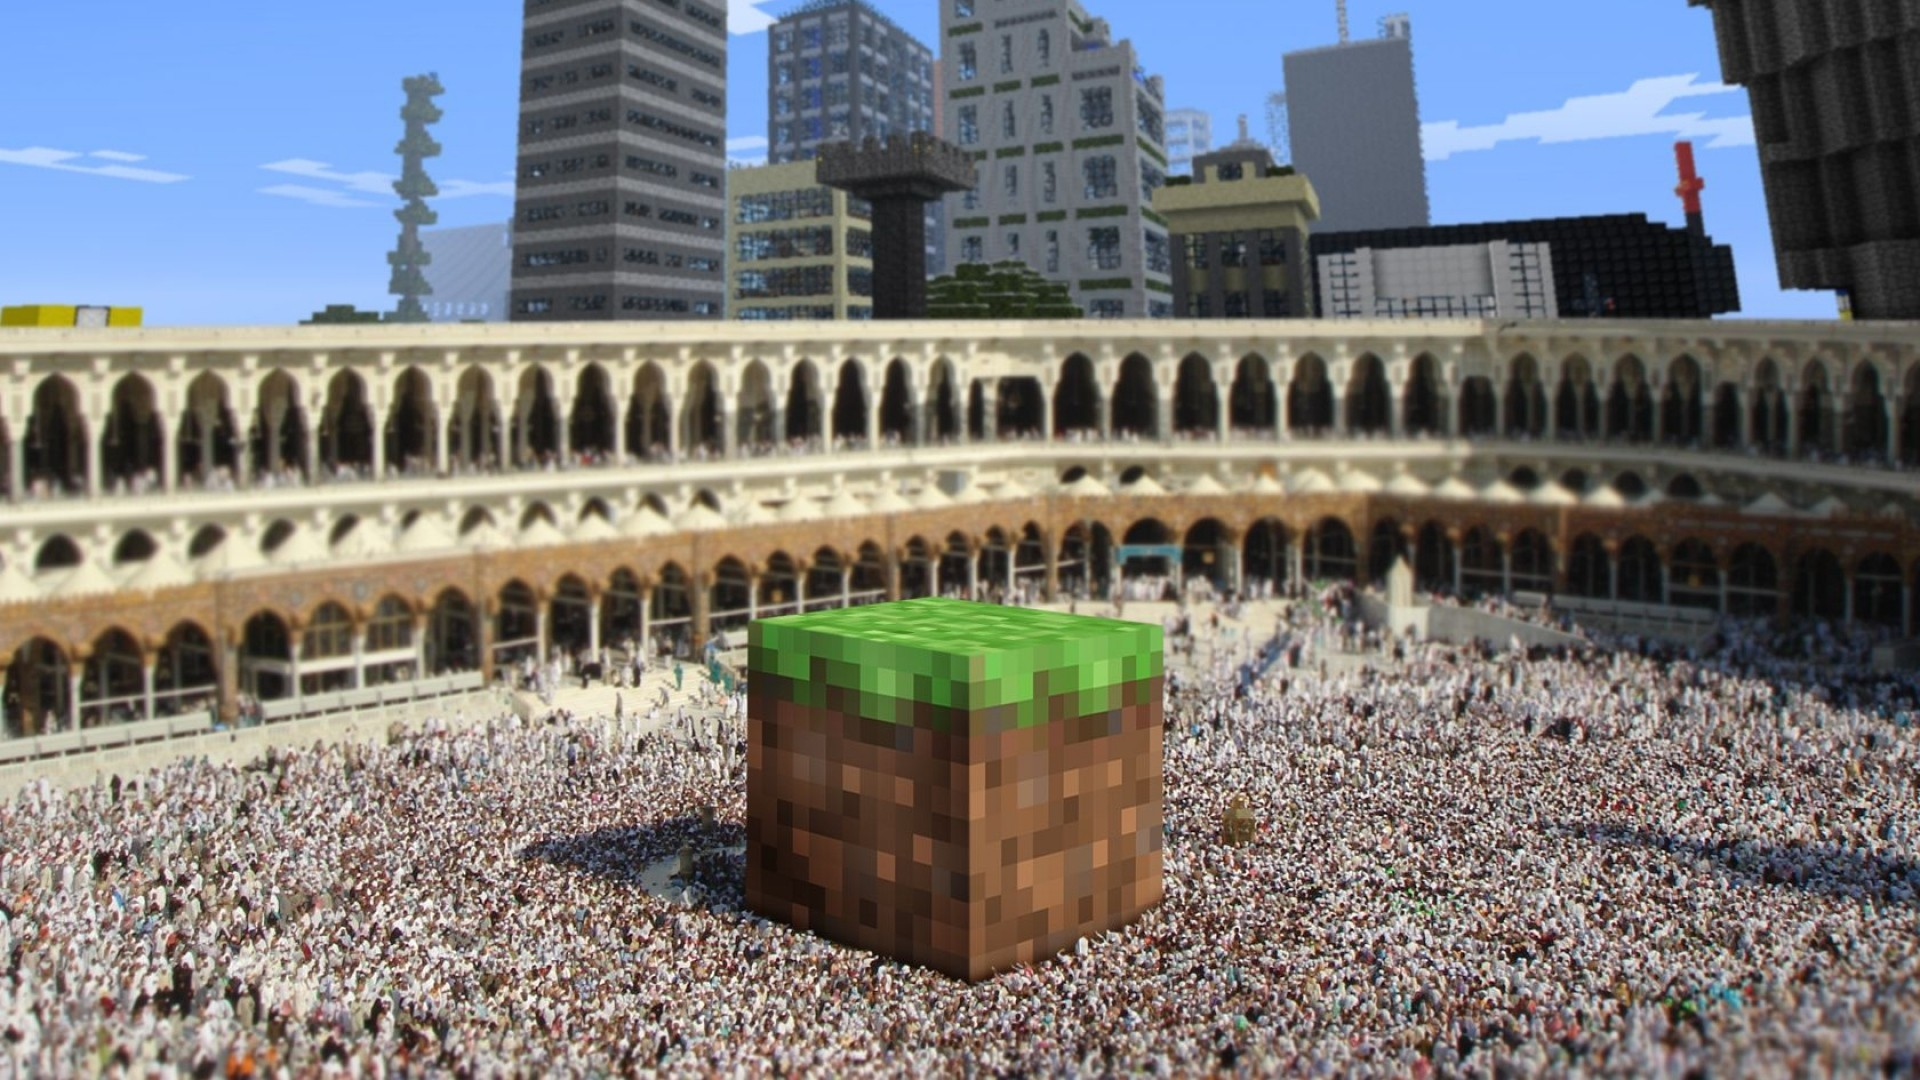 Res: 1920x1080, minecraft background cube city arena crowd hd background wallpapers free  amazing cool smart phone 4k high definition 1920×1080 Wallpaper HD